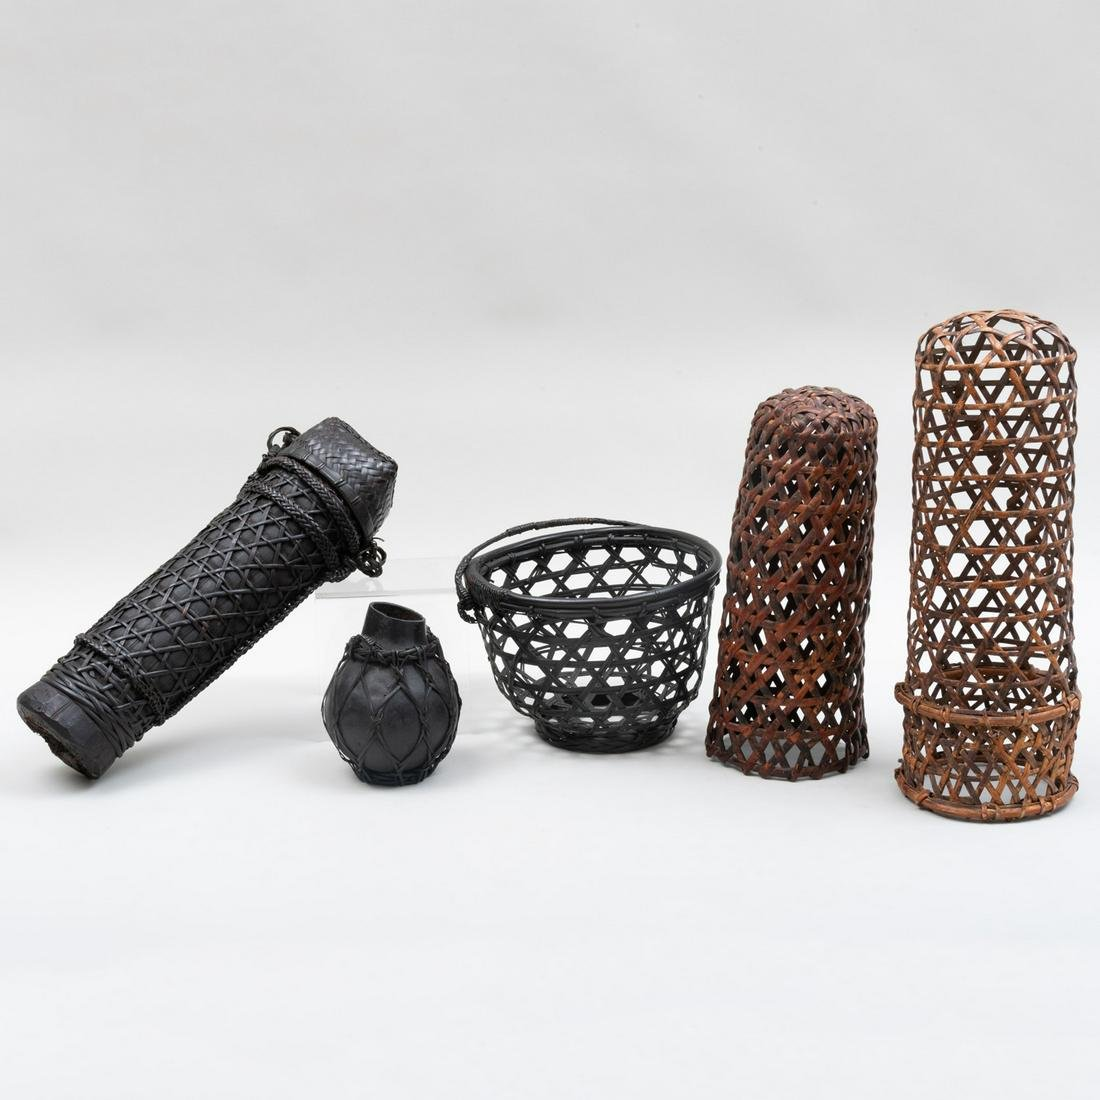 Group of Four Southeast Asian Braided Rattan Vessels